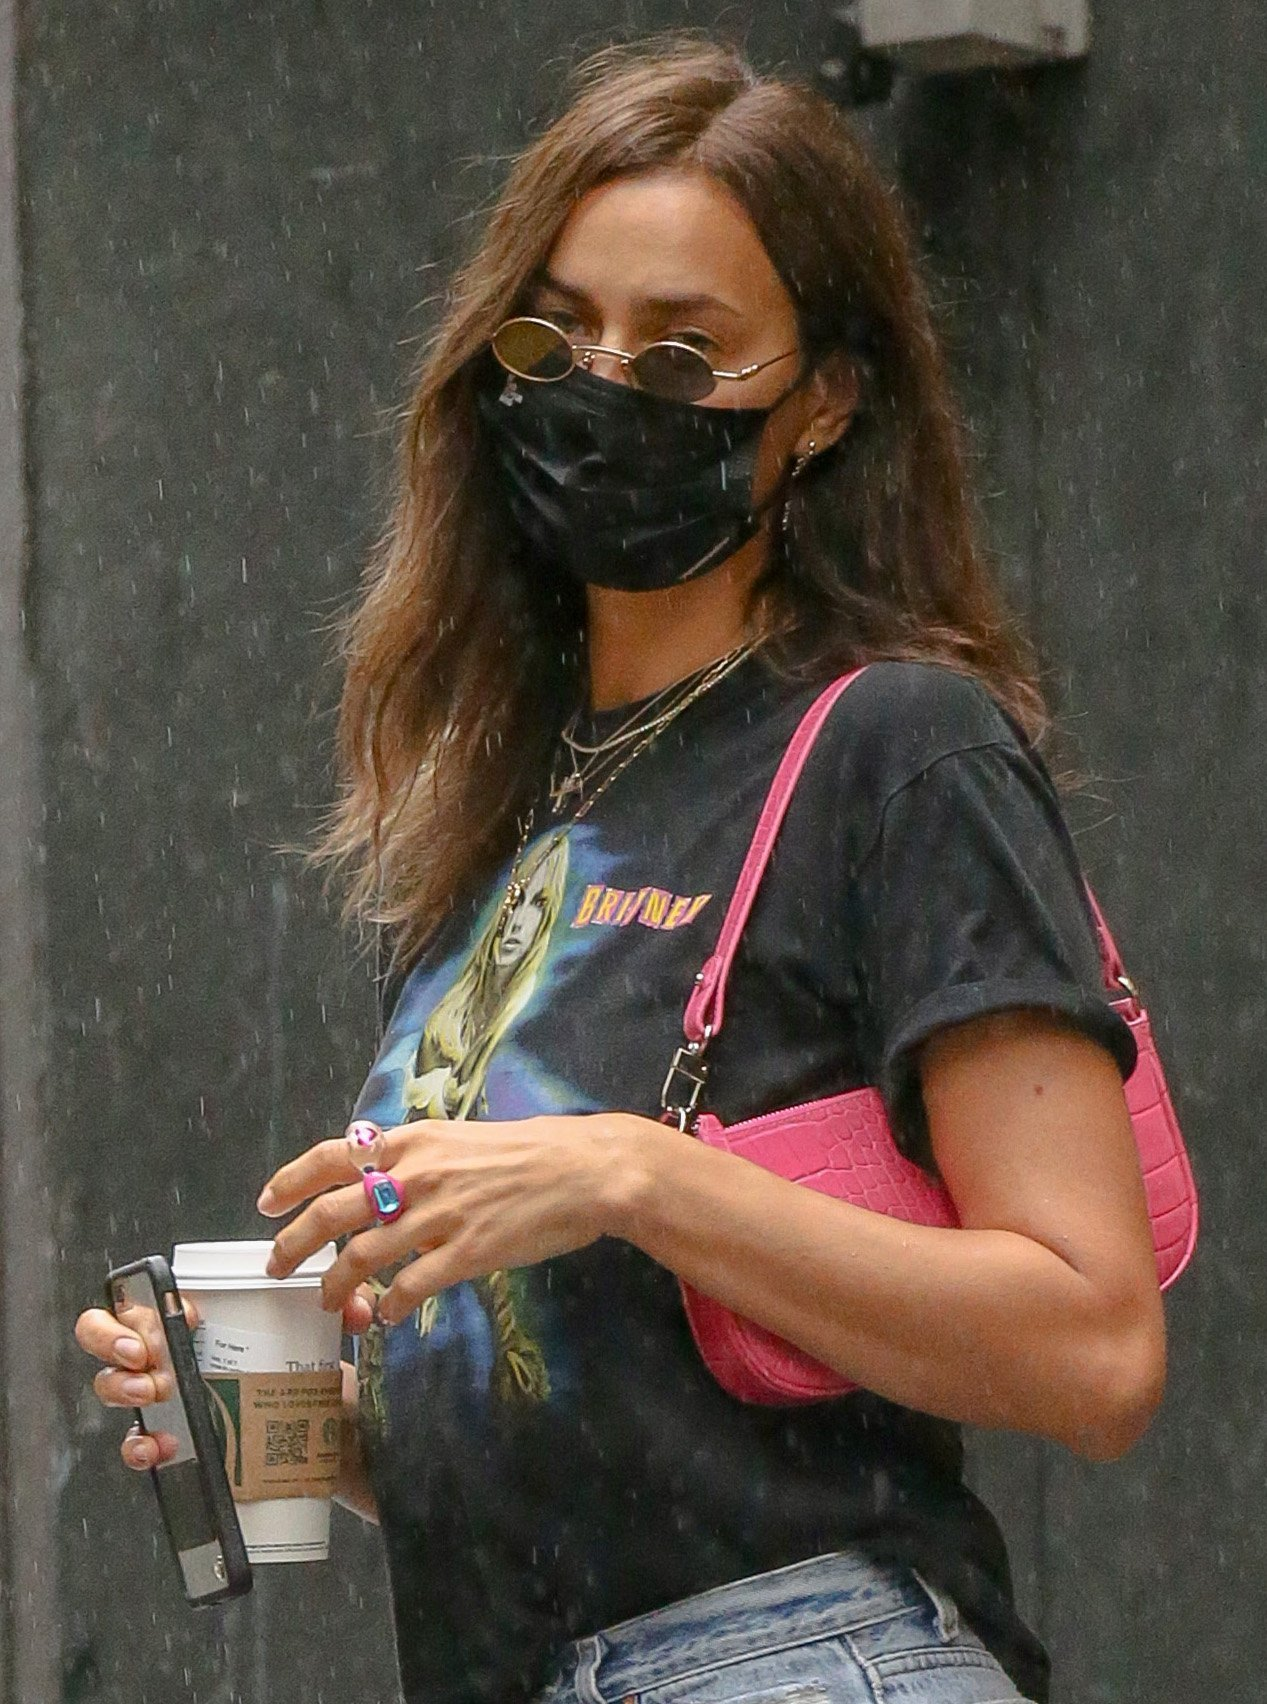 Irina Shayk adds color to her rock 'n' roll look with pink By Far shoulder bag